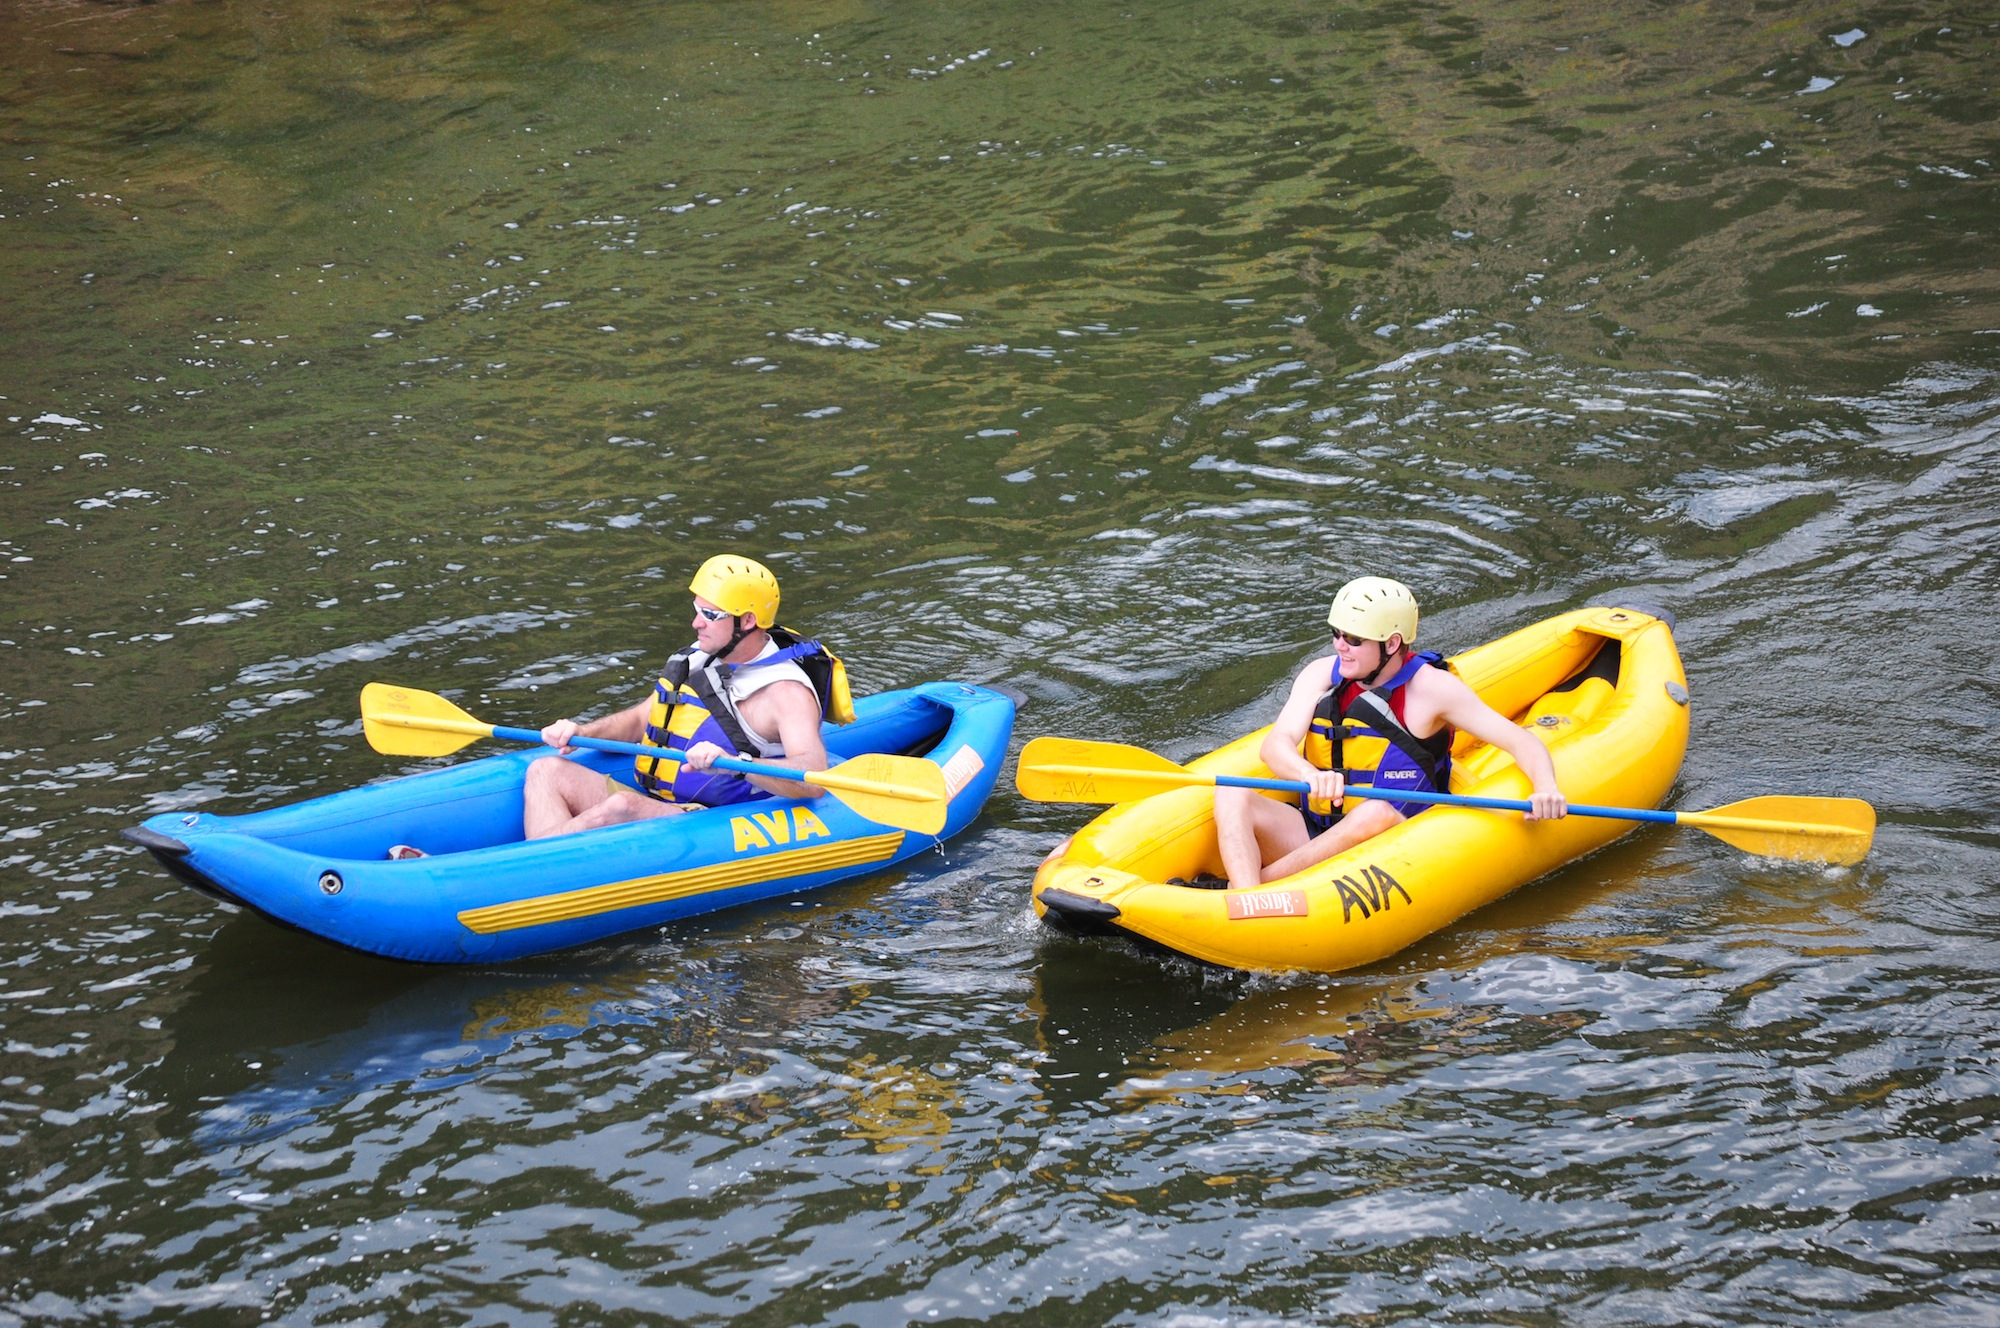 People in inflatable kayaks in river